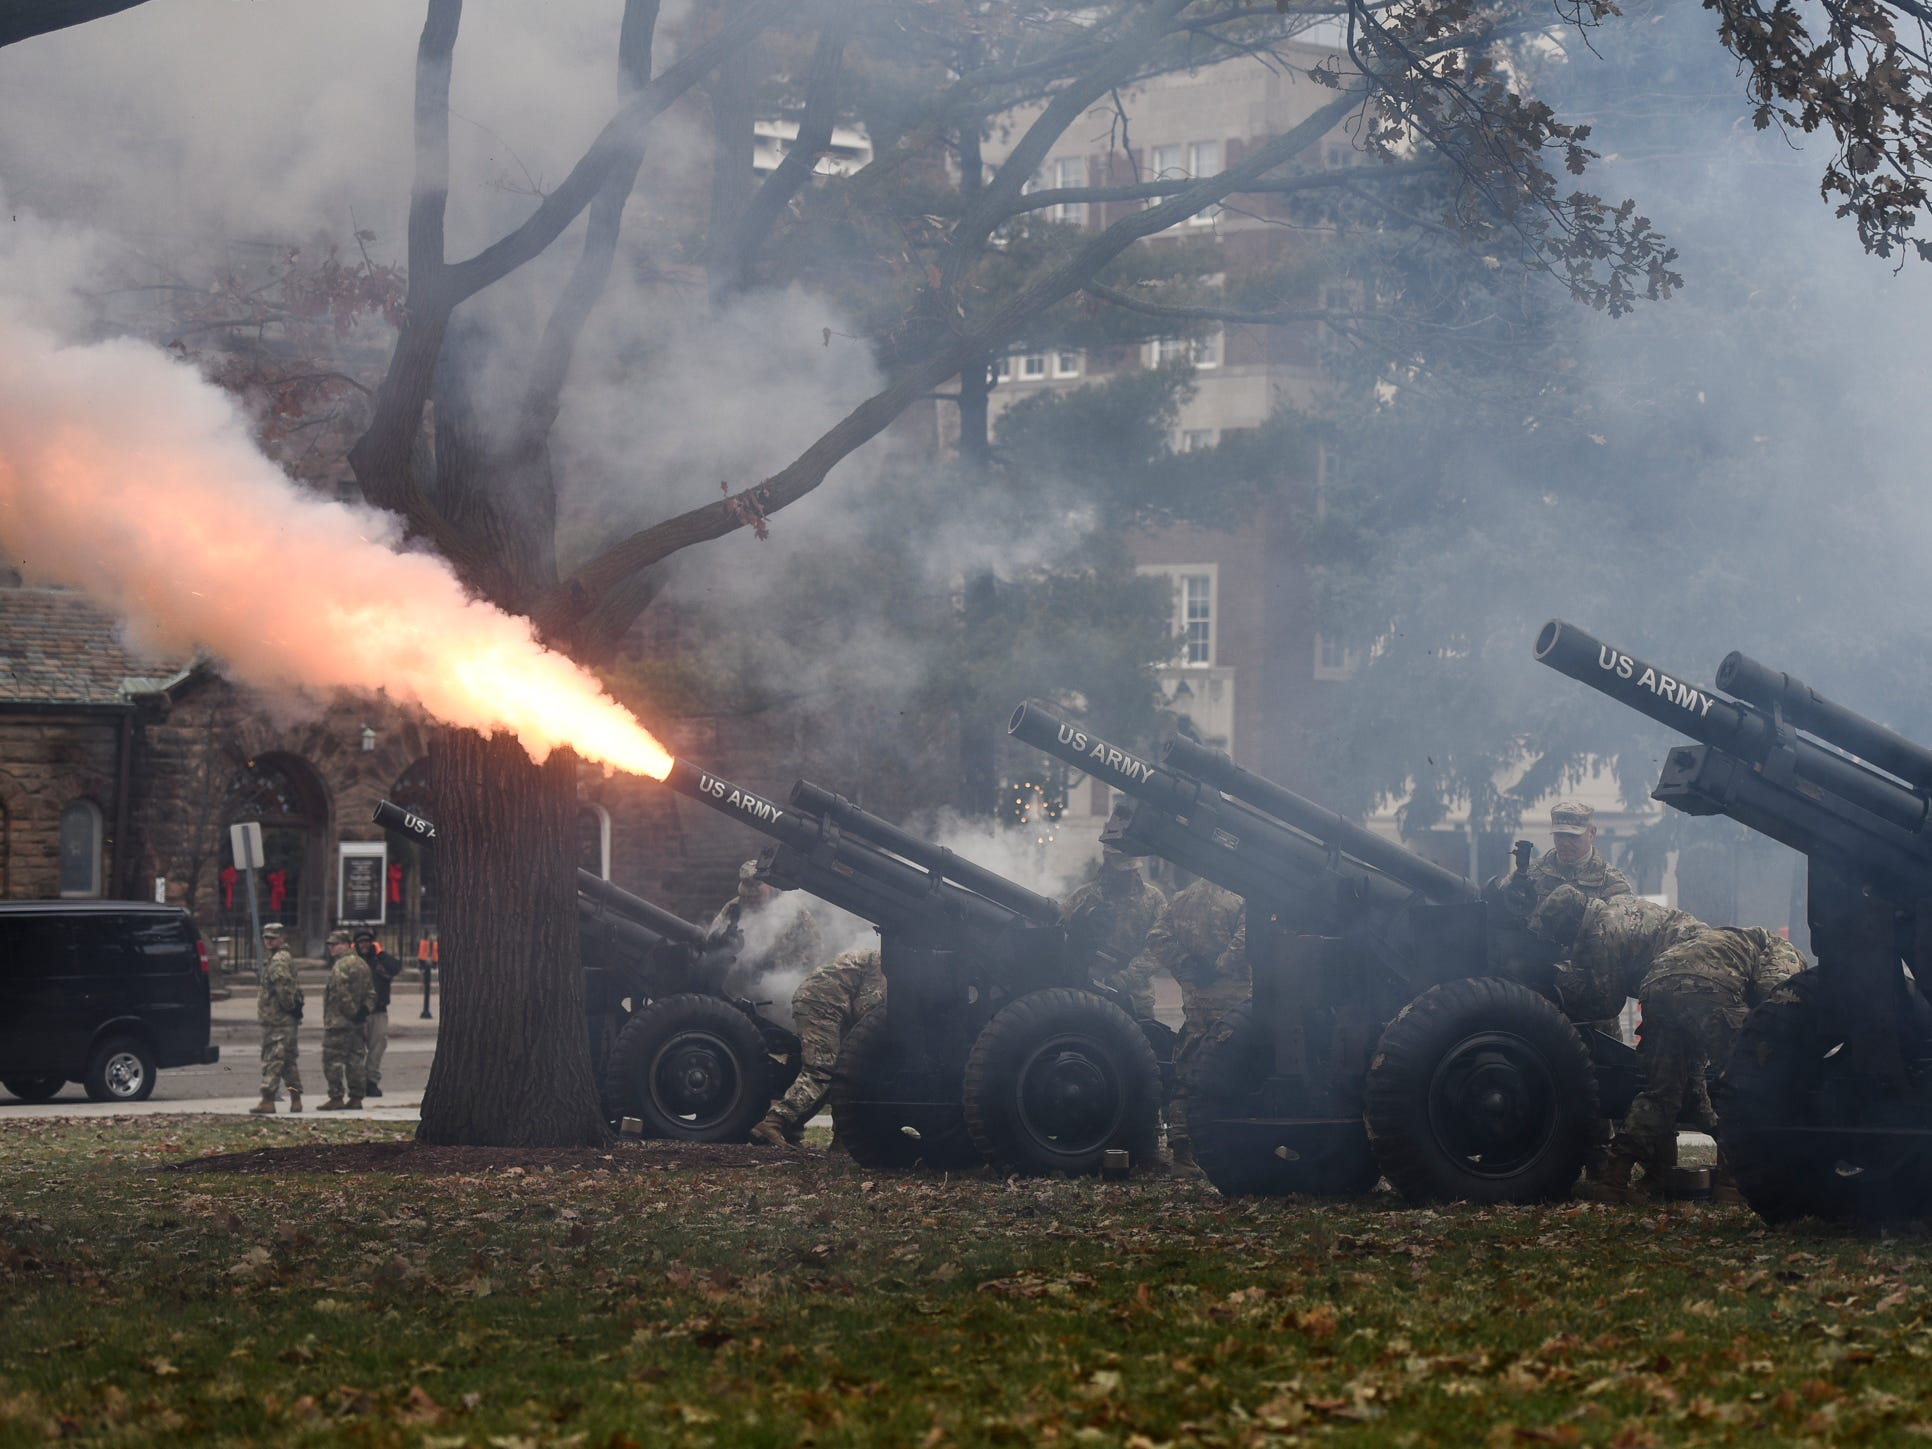 Members of US Army 119th Field Artillery fire a 19-gun salute after the swearing-in of Michigan's 49th Governor Gretchen Whitmer.  [AP Photo/Matthew Dae Smith/Lansing State Journal]